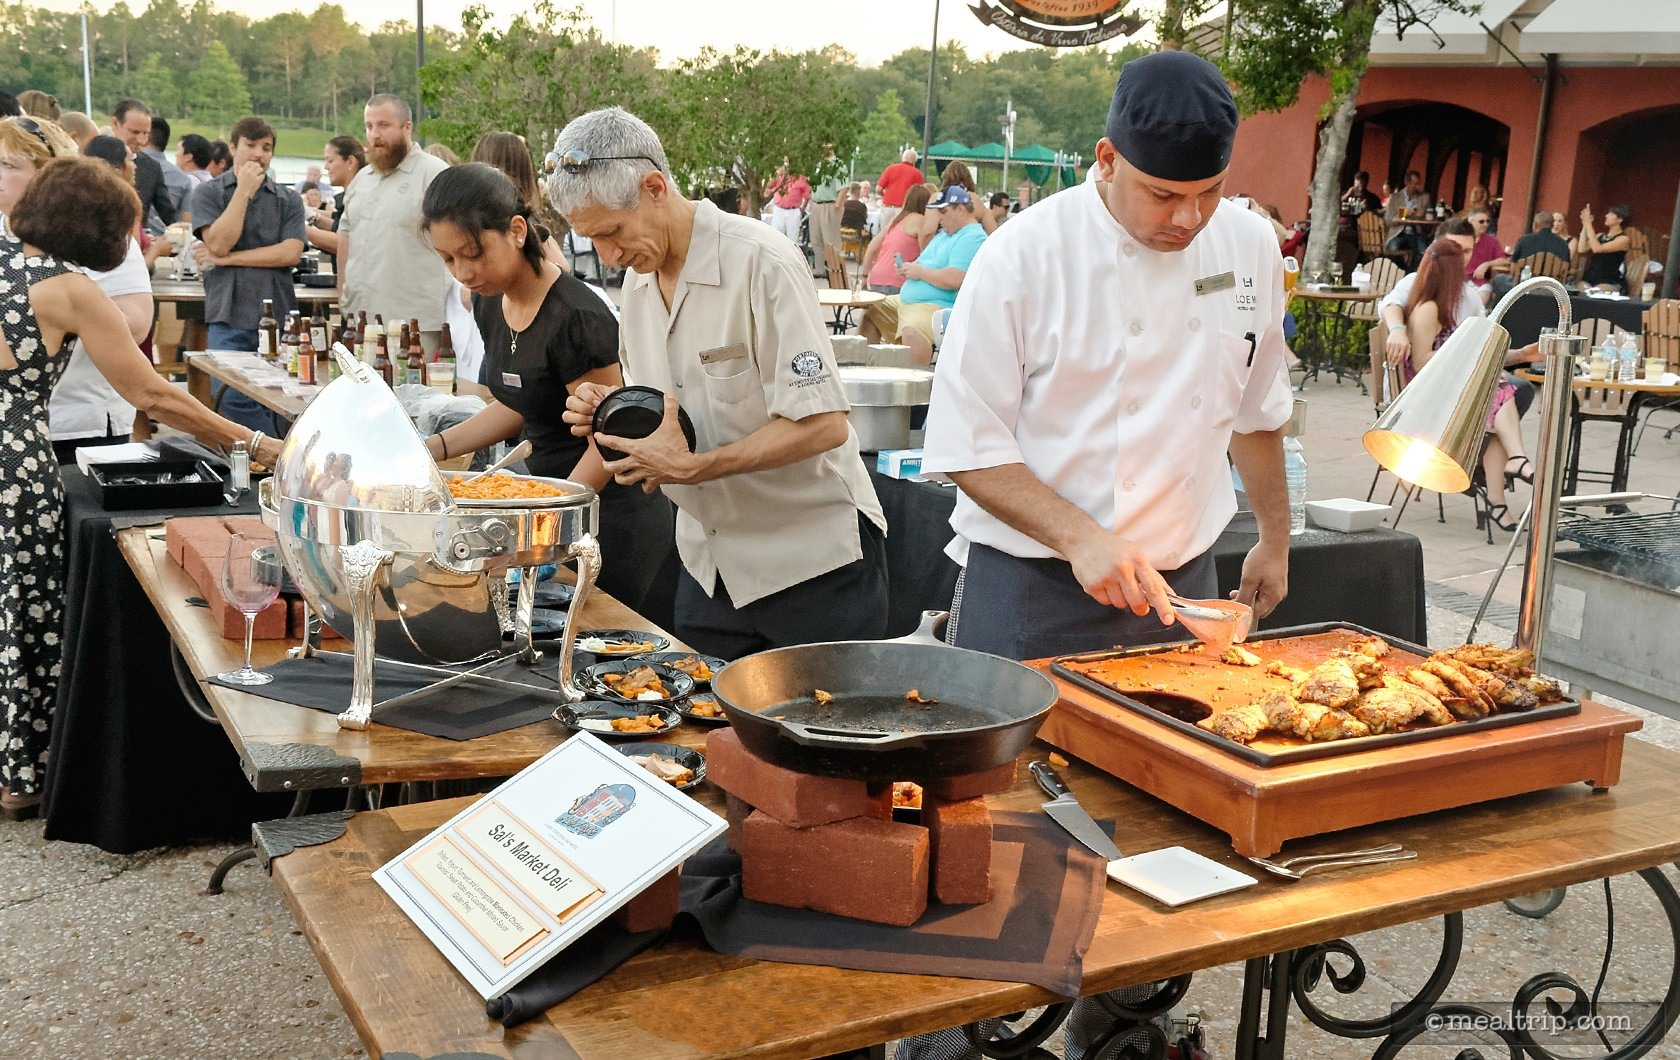 Sal's Deli Cooking Station at a Harbor Nights Event